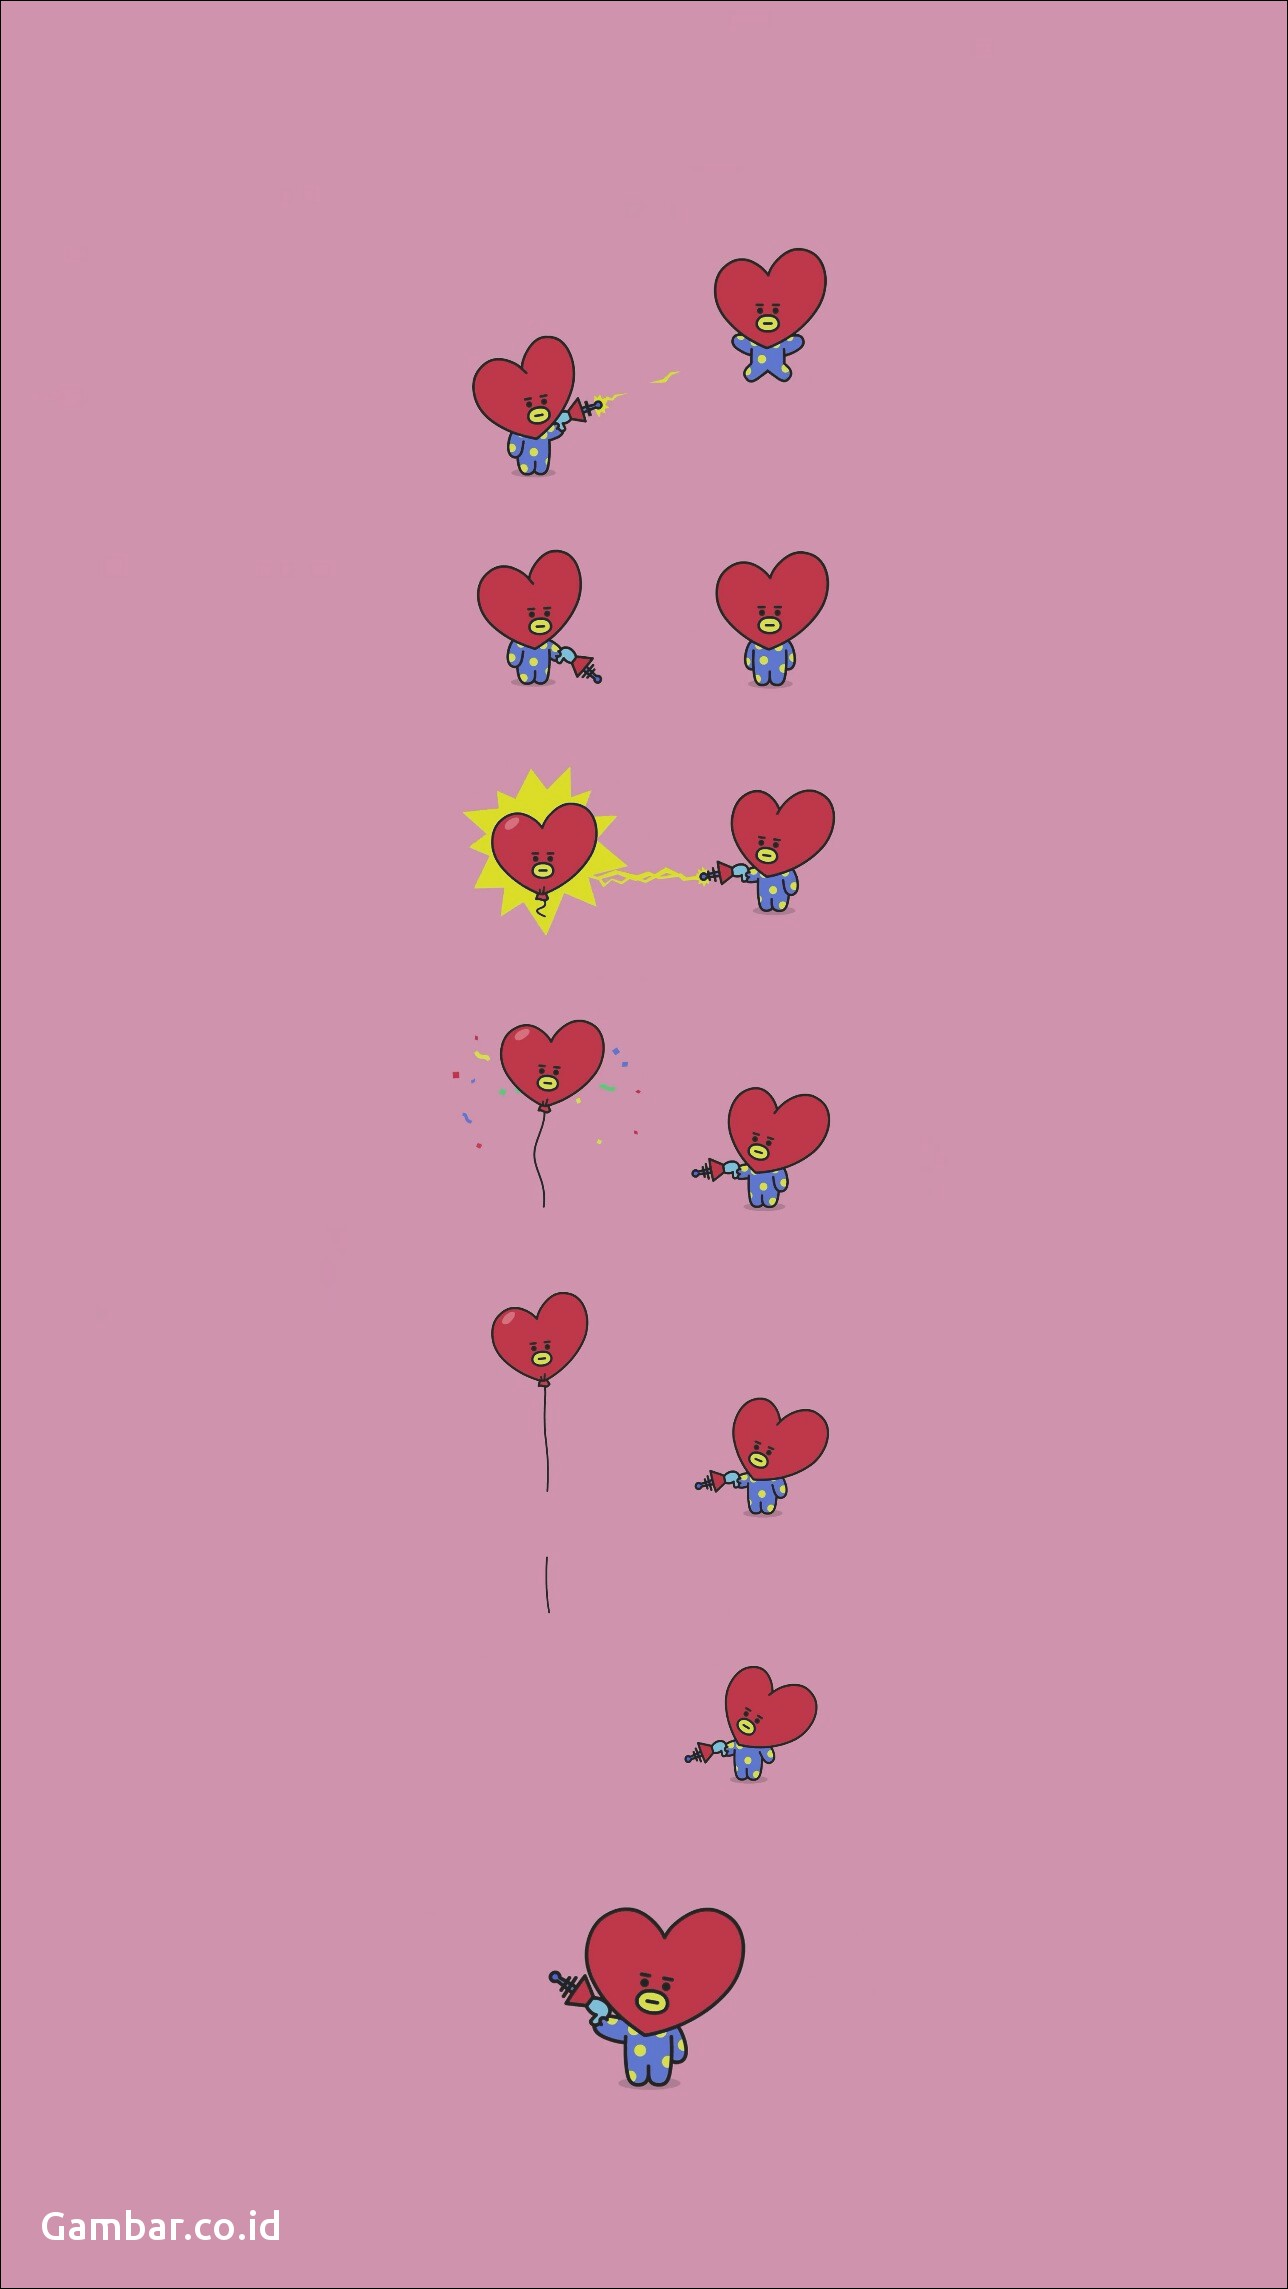 Tata BT21 Wallpapers FREE On GreePX